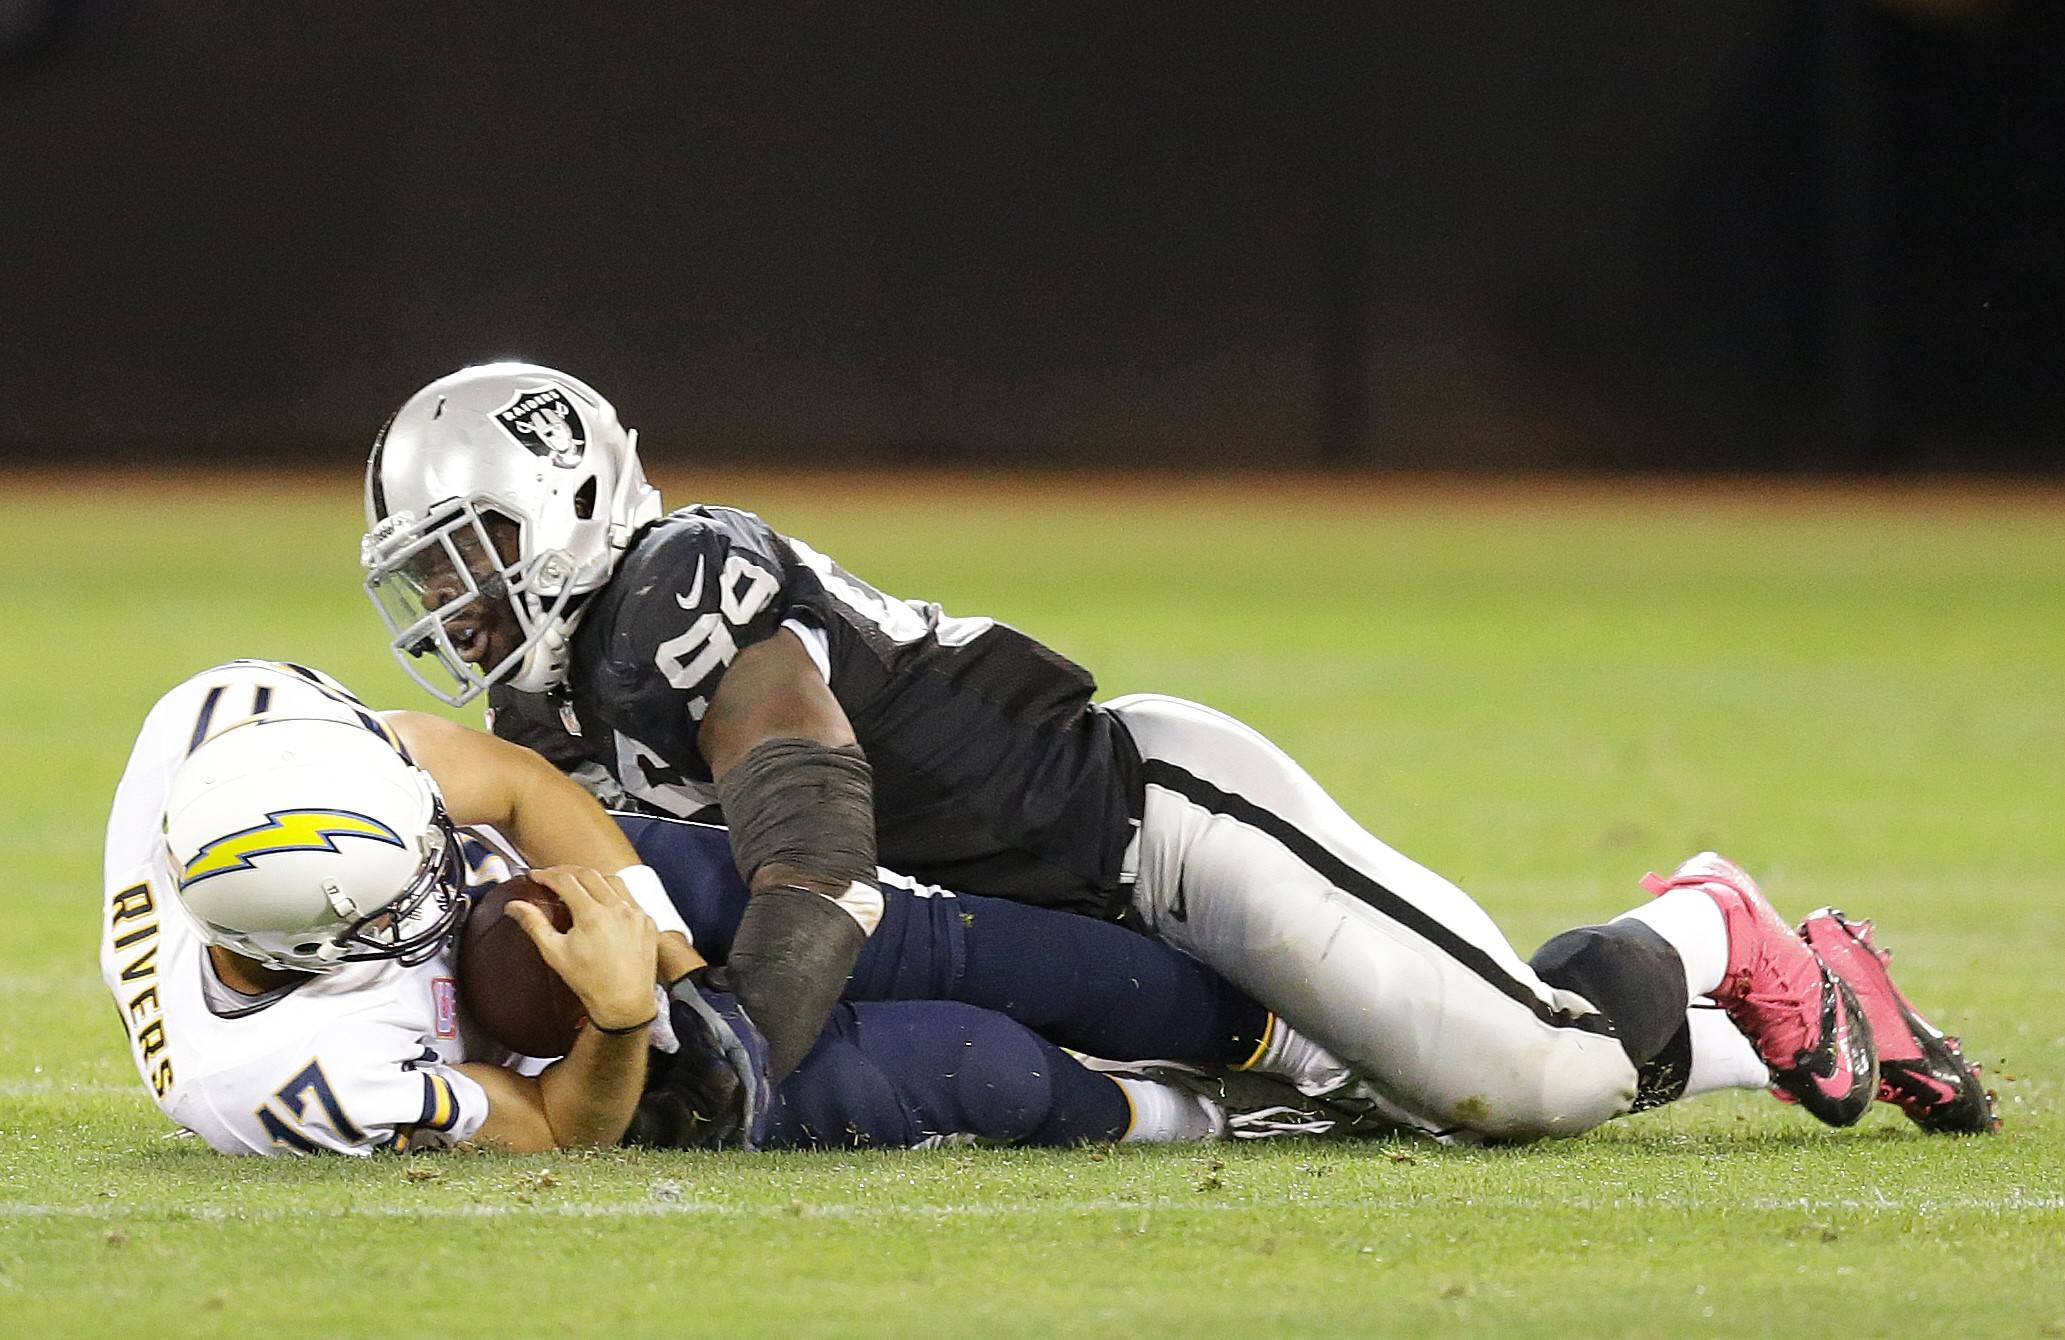 Oakland Raiders defensive end Lamarr Houston (99) lays on top of San Diego Chargers quarterback Philip Rivers (17) after sacking him during the second quarter of an NFL football game in Oakland, Calif., Sunday, Oct. 6, 2013.